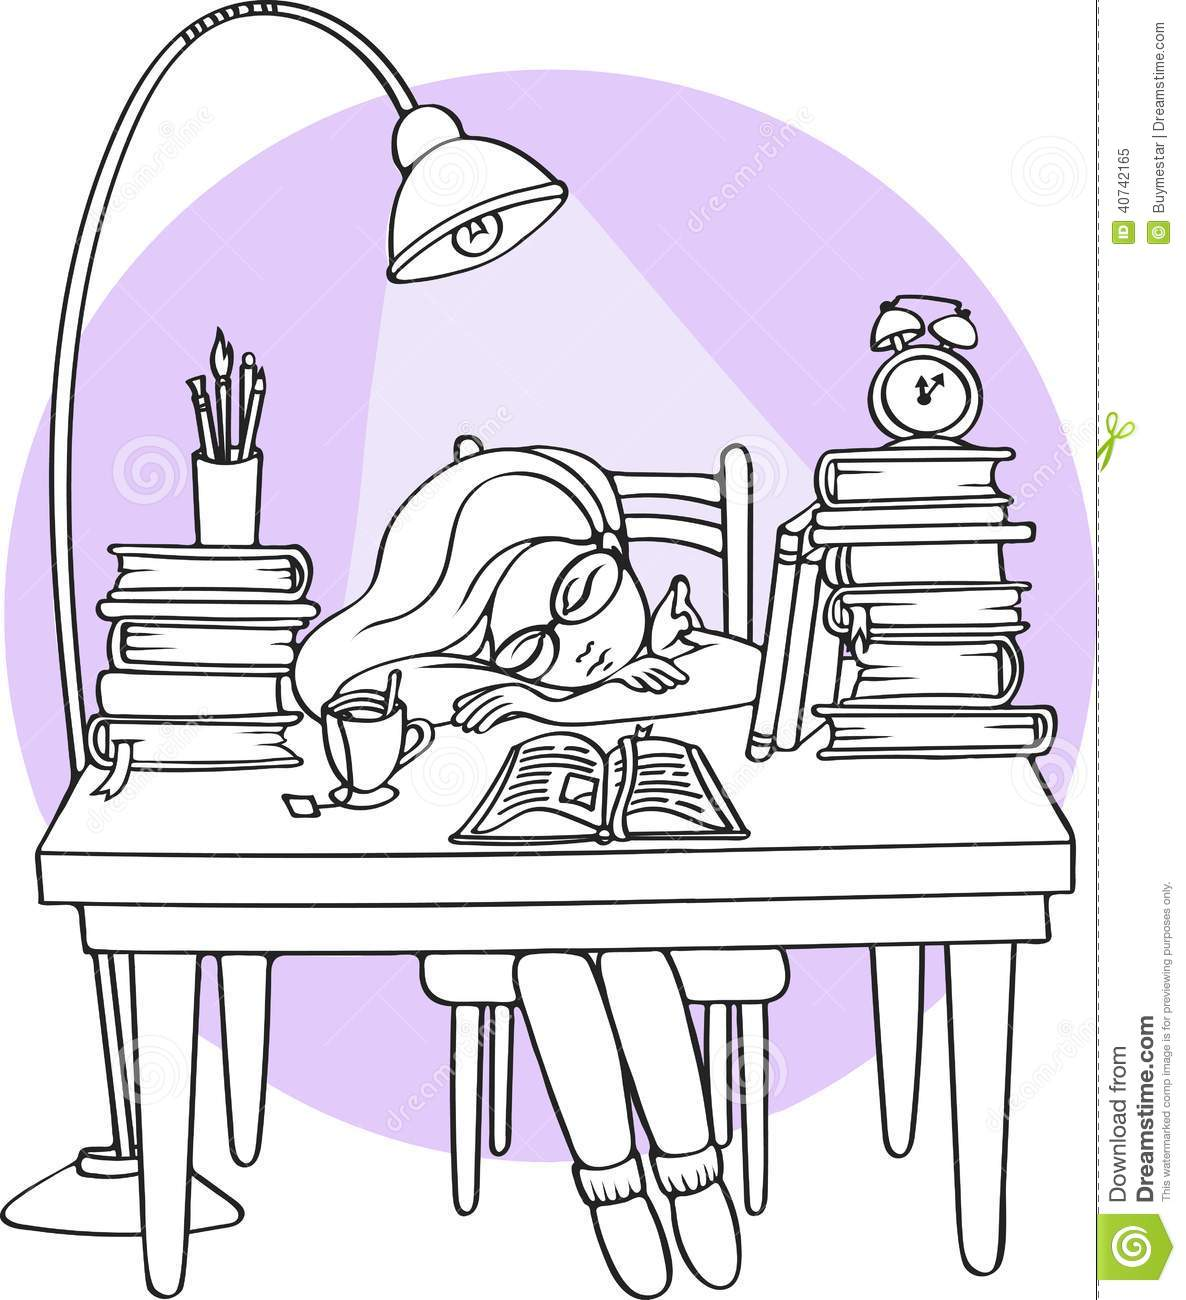 Night Table Clipart Smart Girl Studying At Night Sleeping On The Desk With